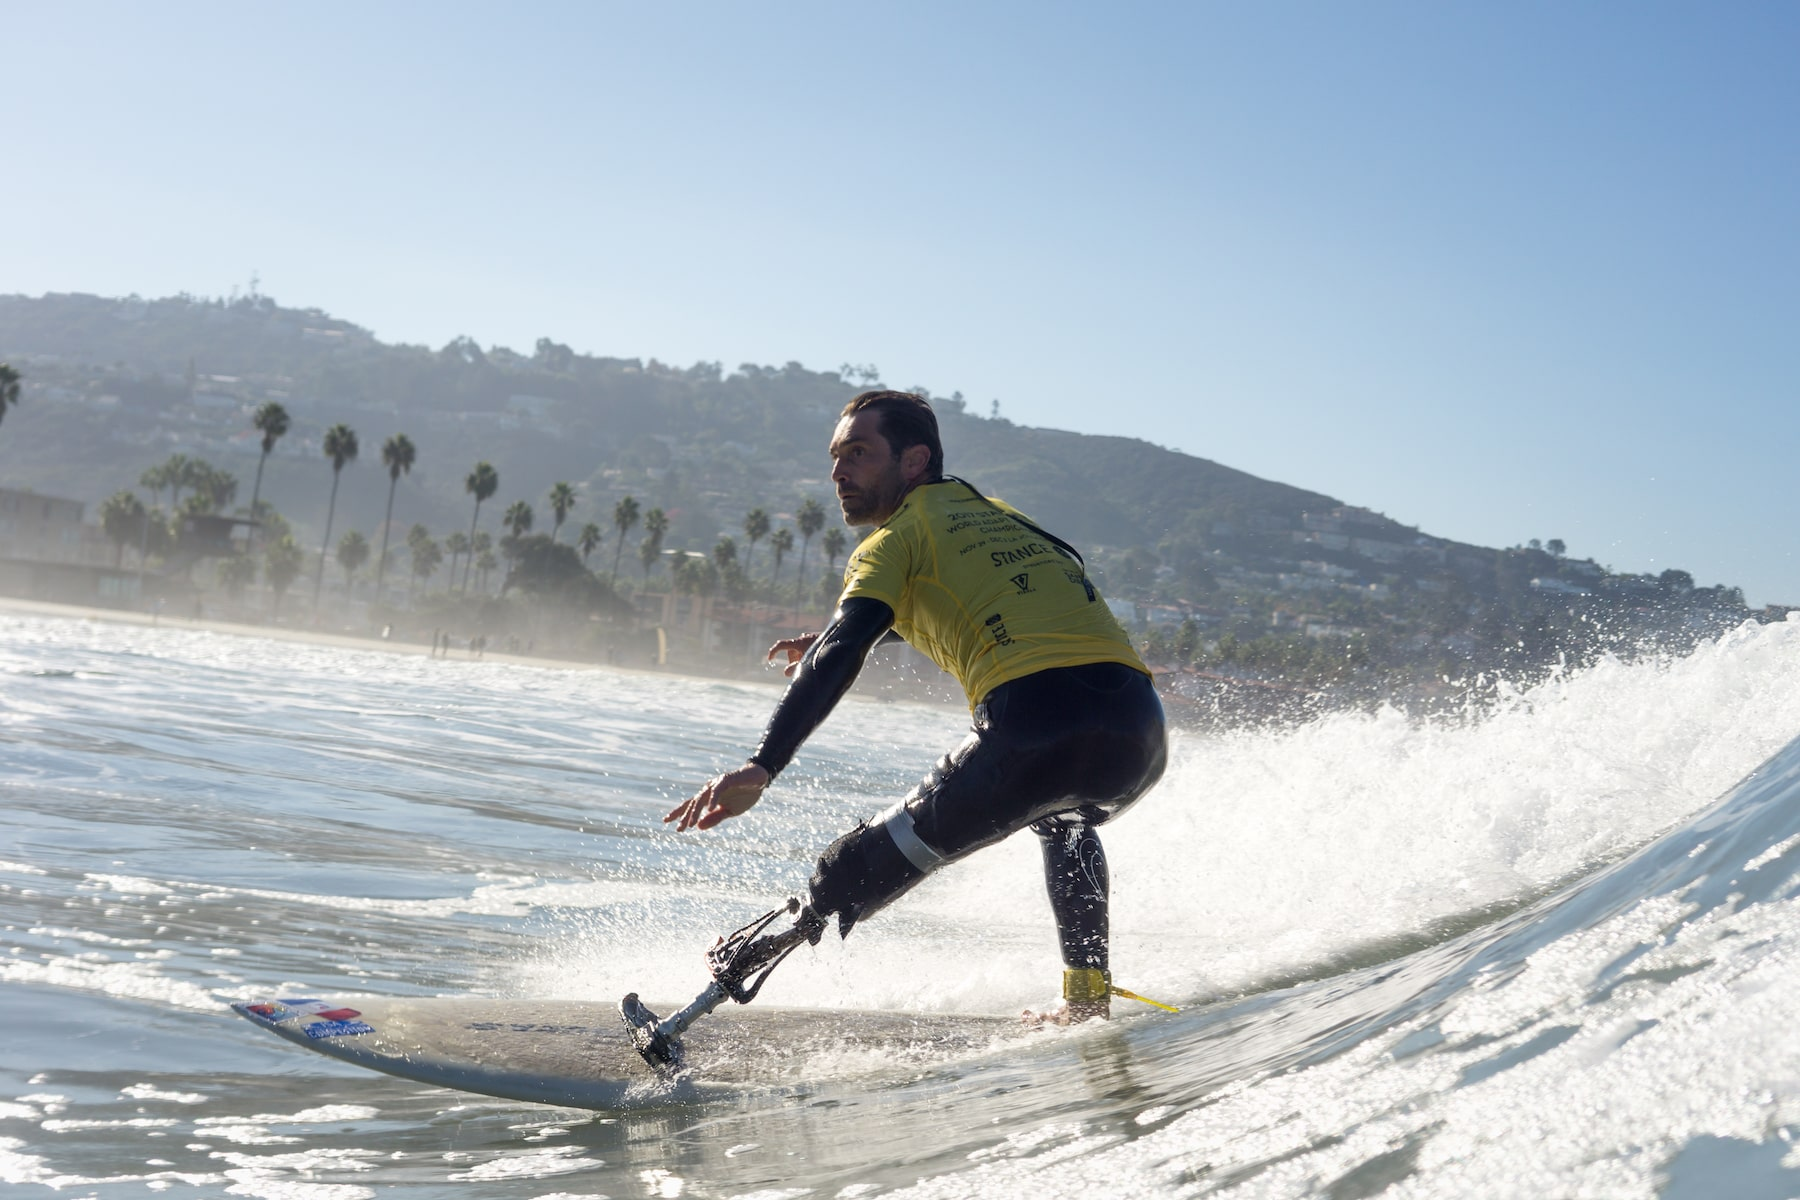 image for: 2021 Pismo Beach ISA World Para Surfing Championship